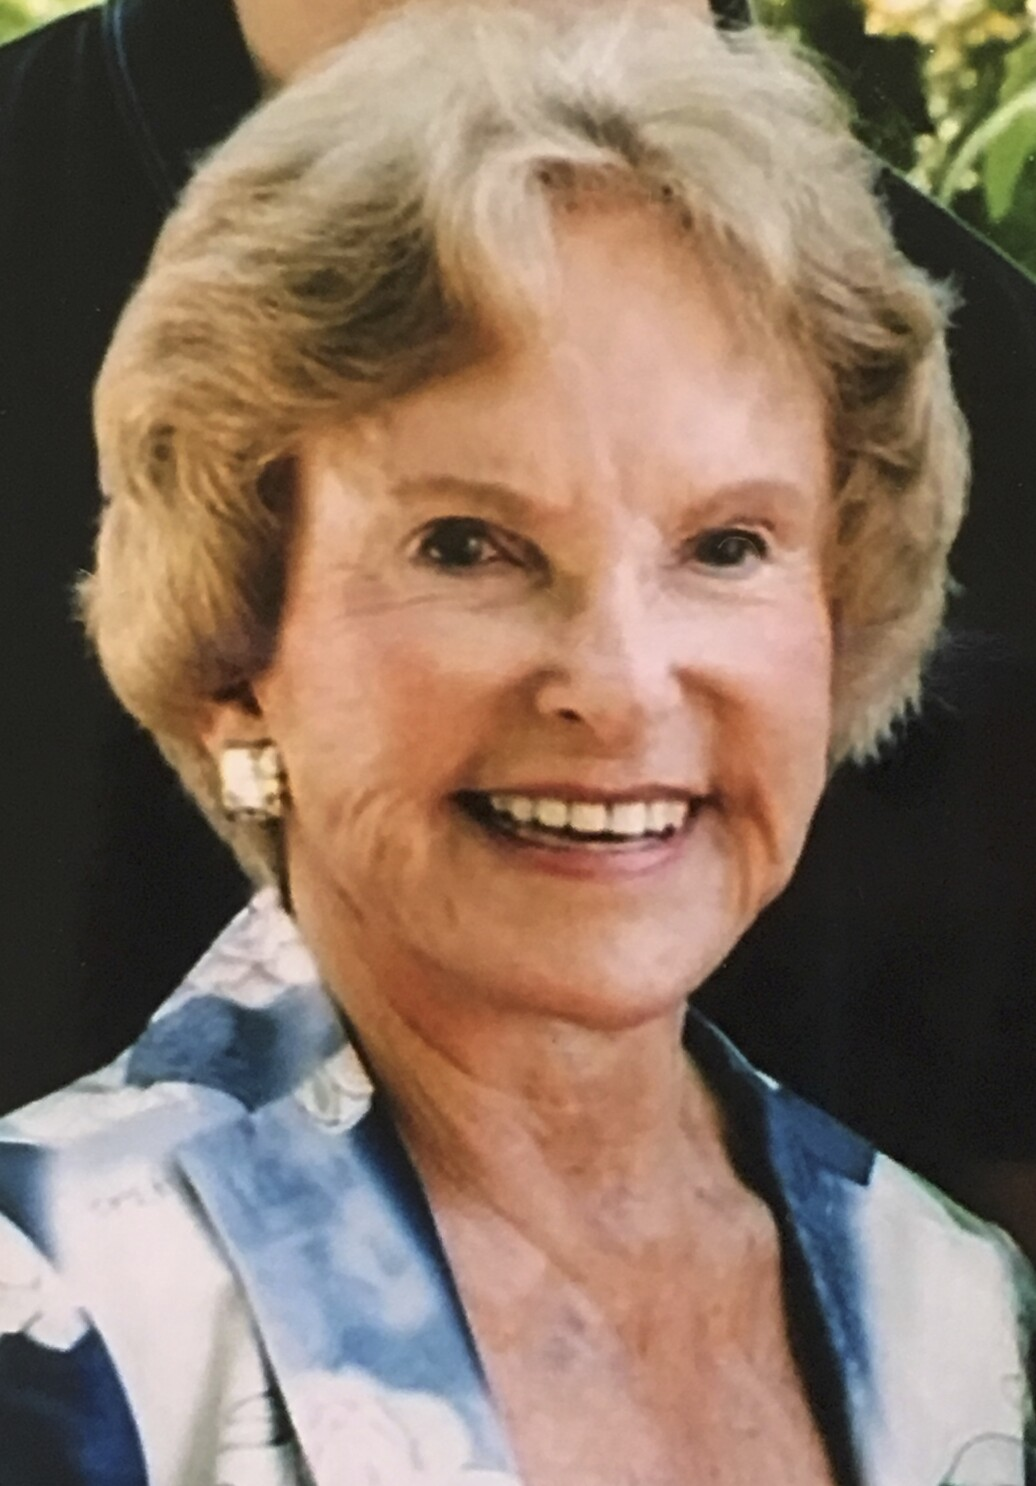 Elaine Kendall was an author and book critic for the Los Angeles Times. She died in Montecito at age 91.